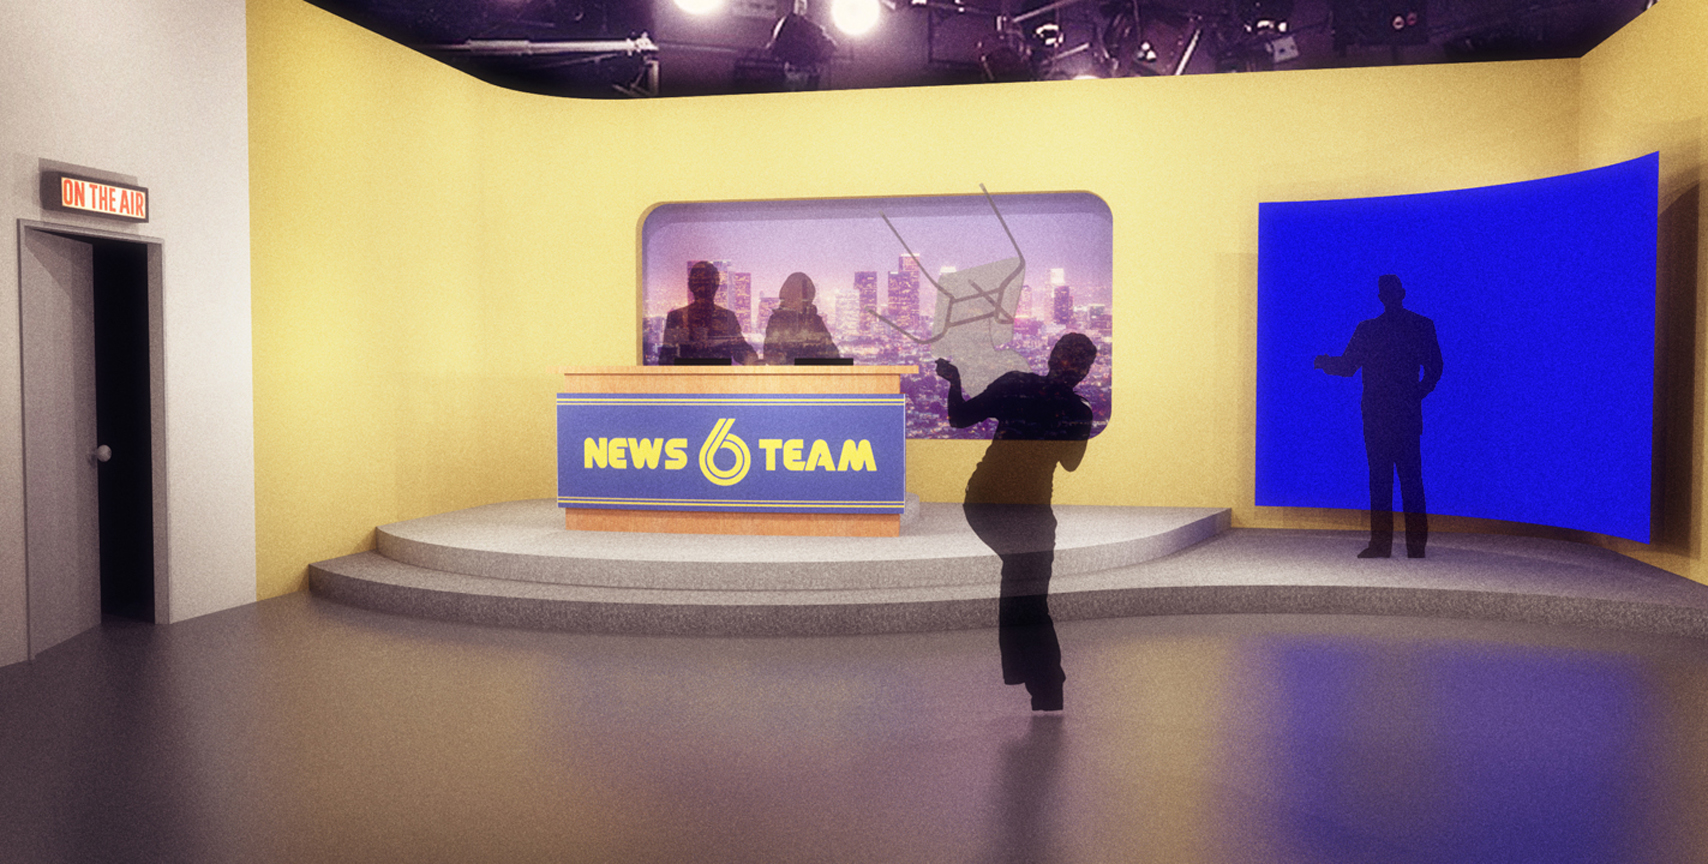 NEWS TEAM SIX, ASHLEY BURSTS IN AND THROWS A CHAIR - 3D RENDERING